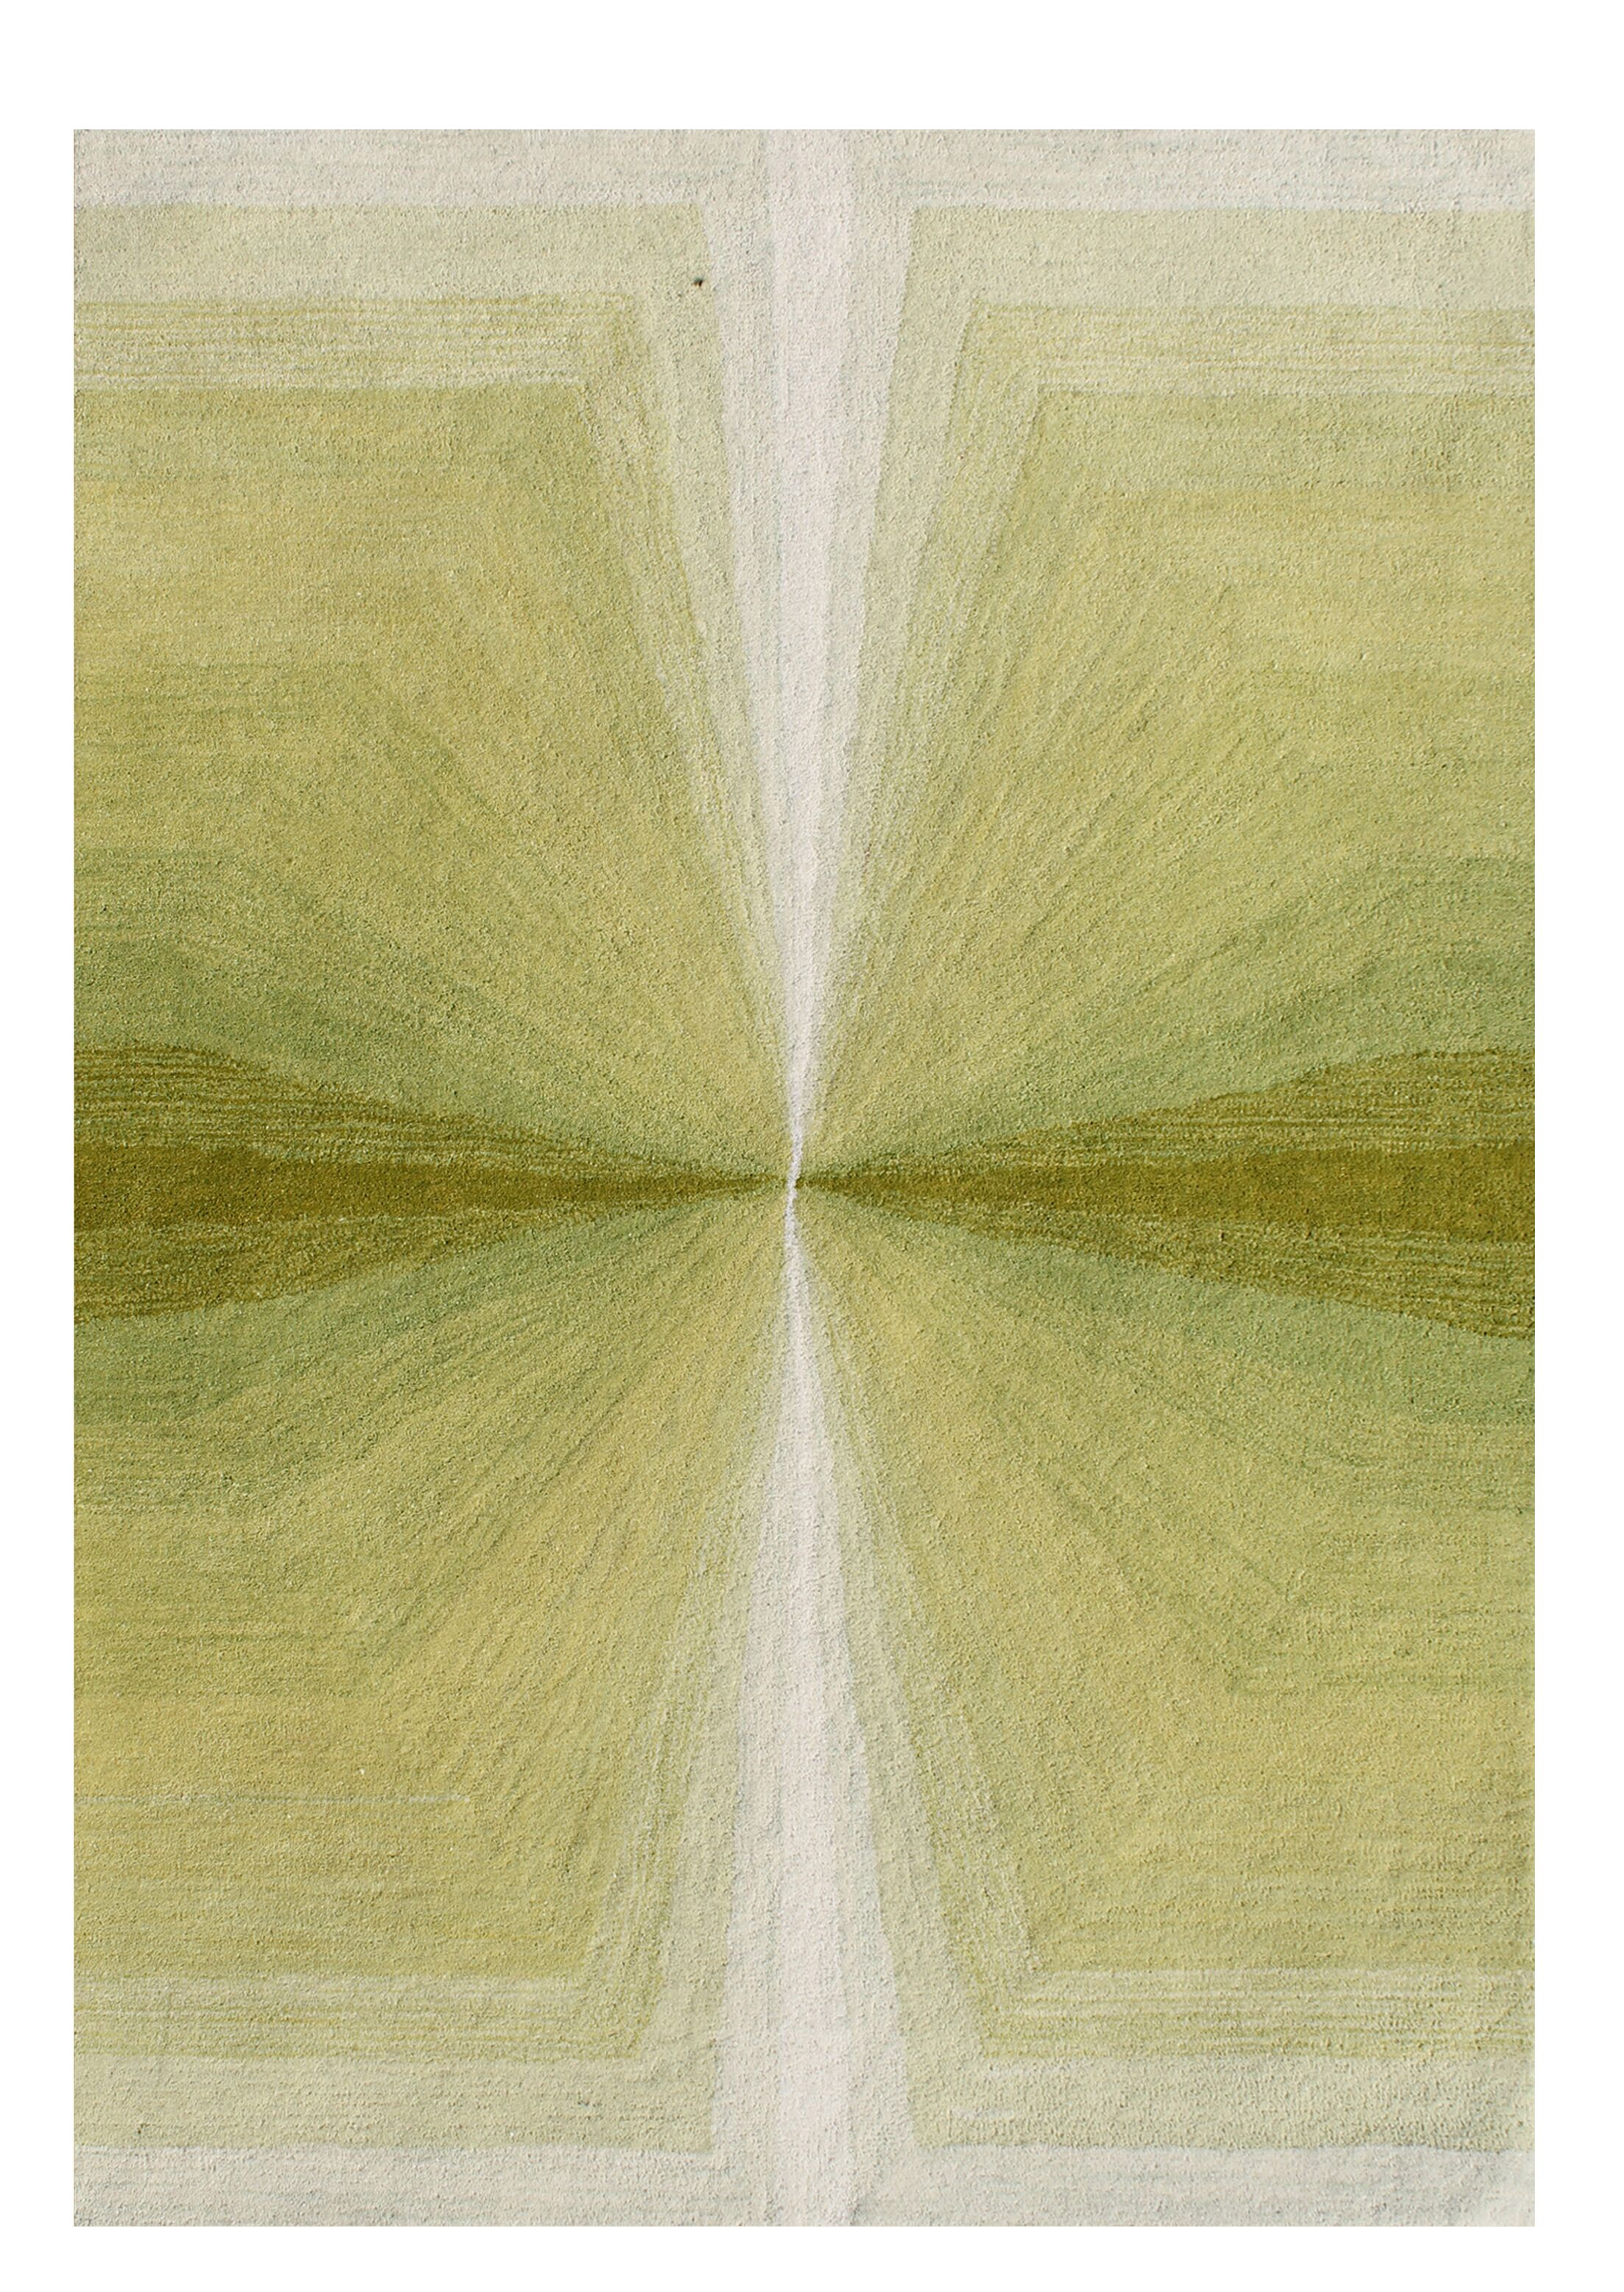 Rafael Shades of Illusion Hand-Tufted Wool Green Area Rug Rug Size: Rectangle 8' x 10'